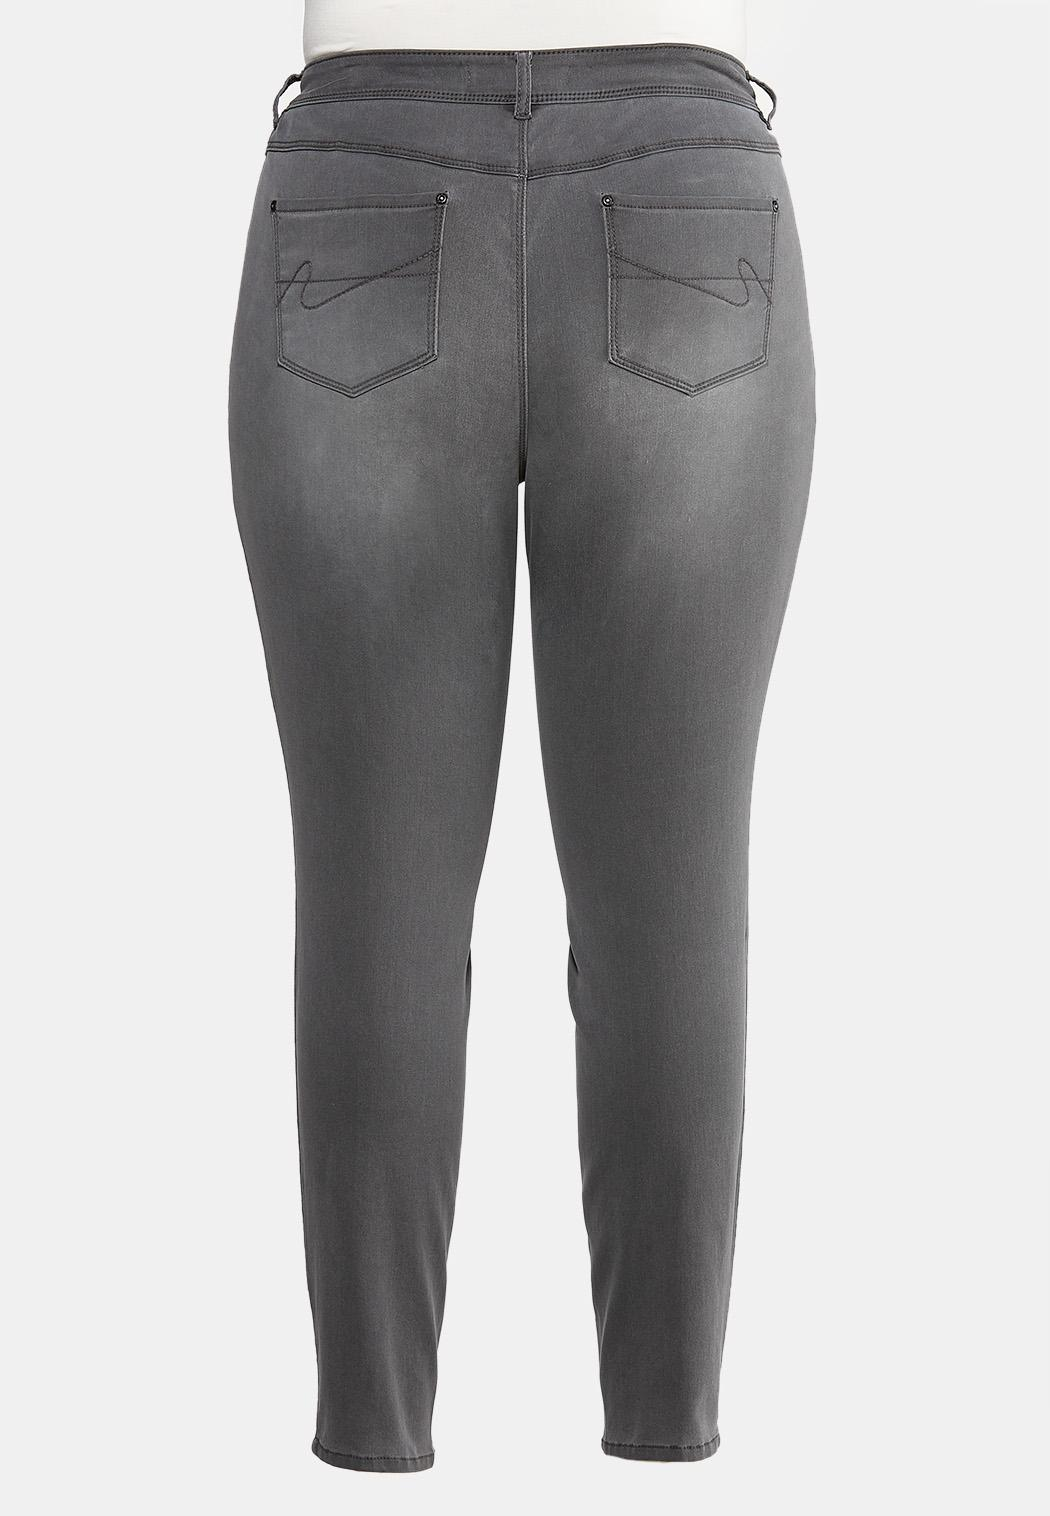 Plus Size Gray Wash Jeggings (Item #43994261)